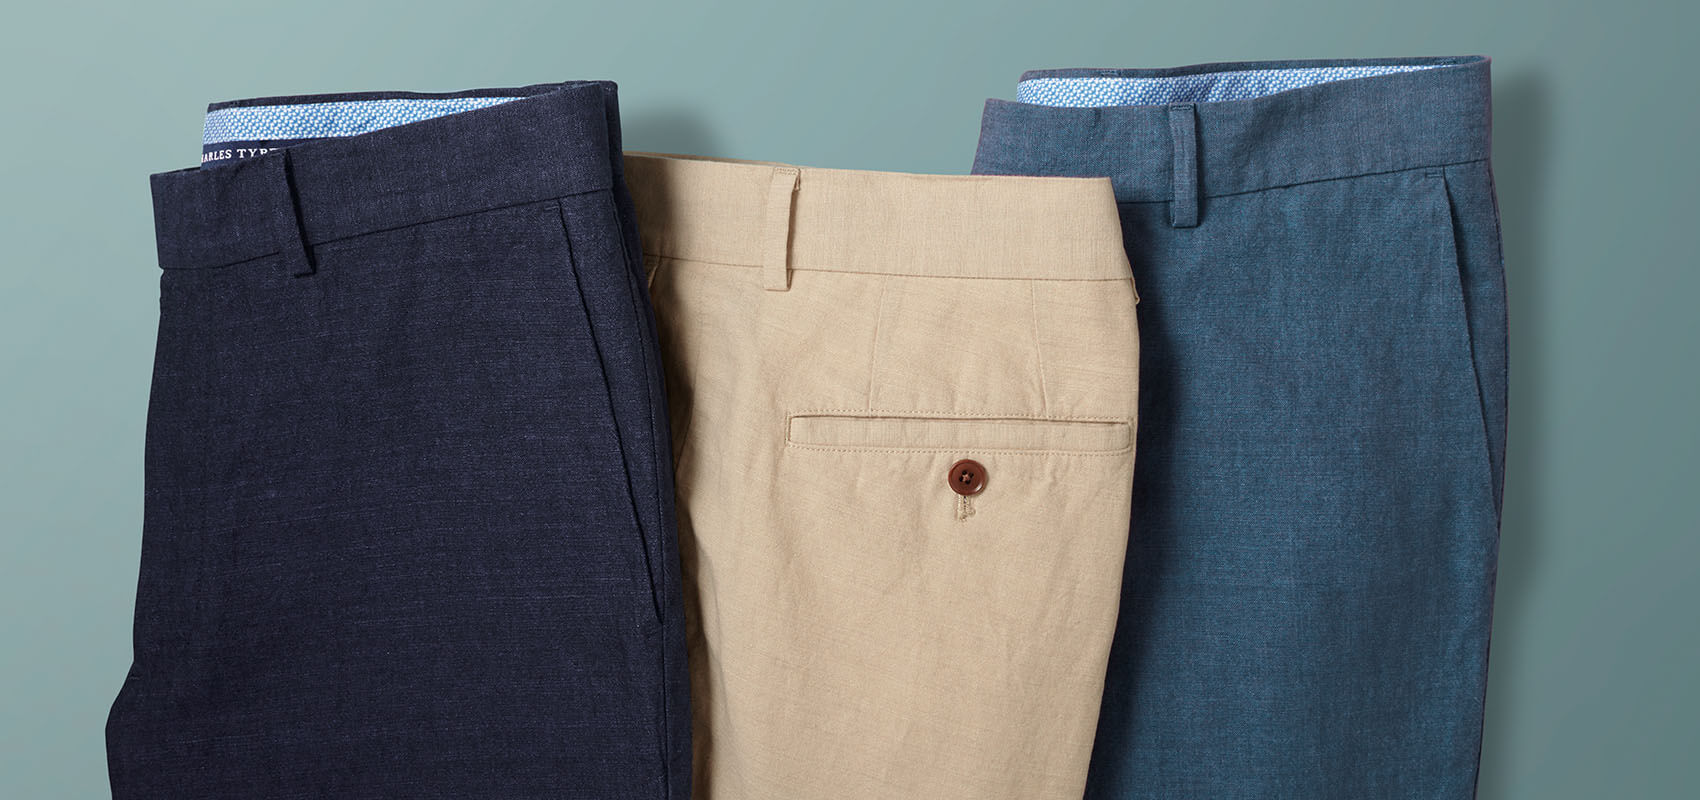 Charles Tyrwhitt casual trousers